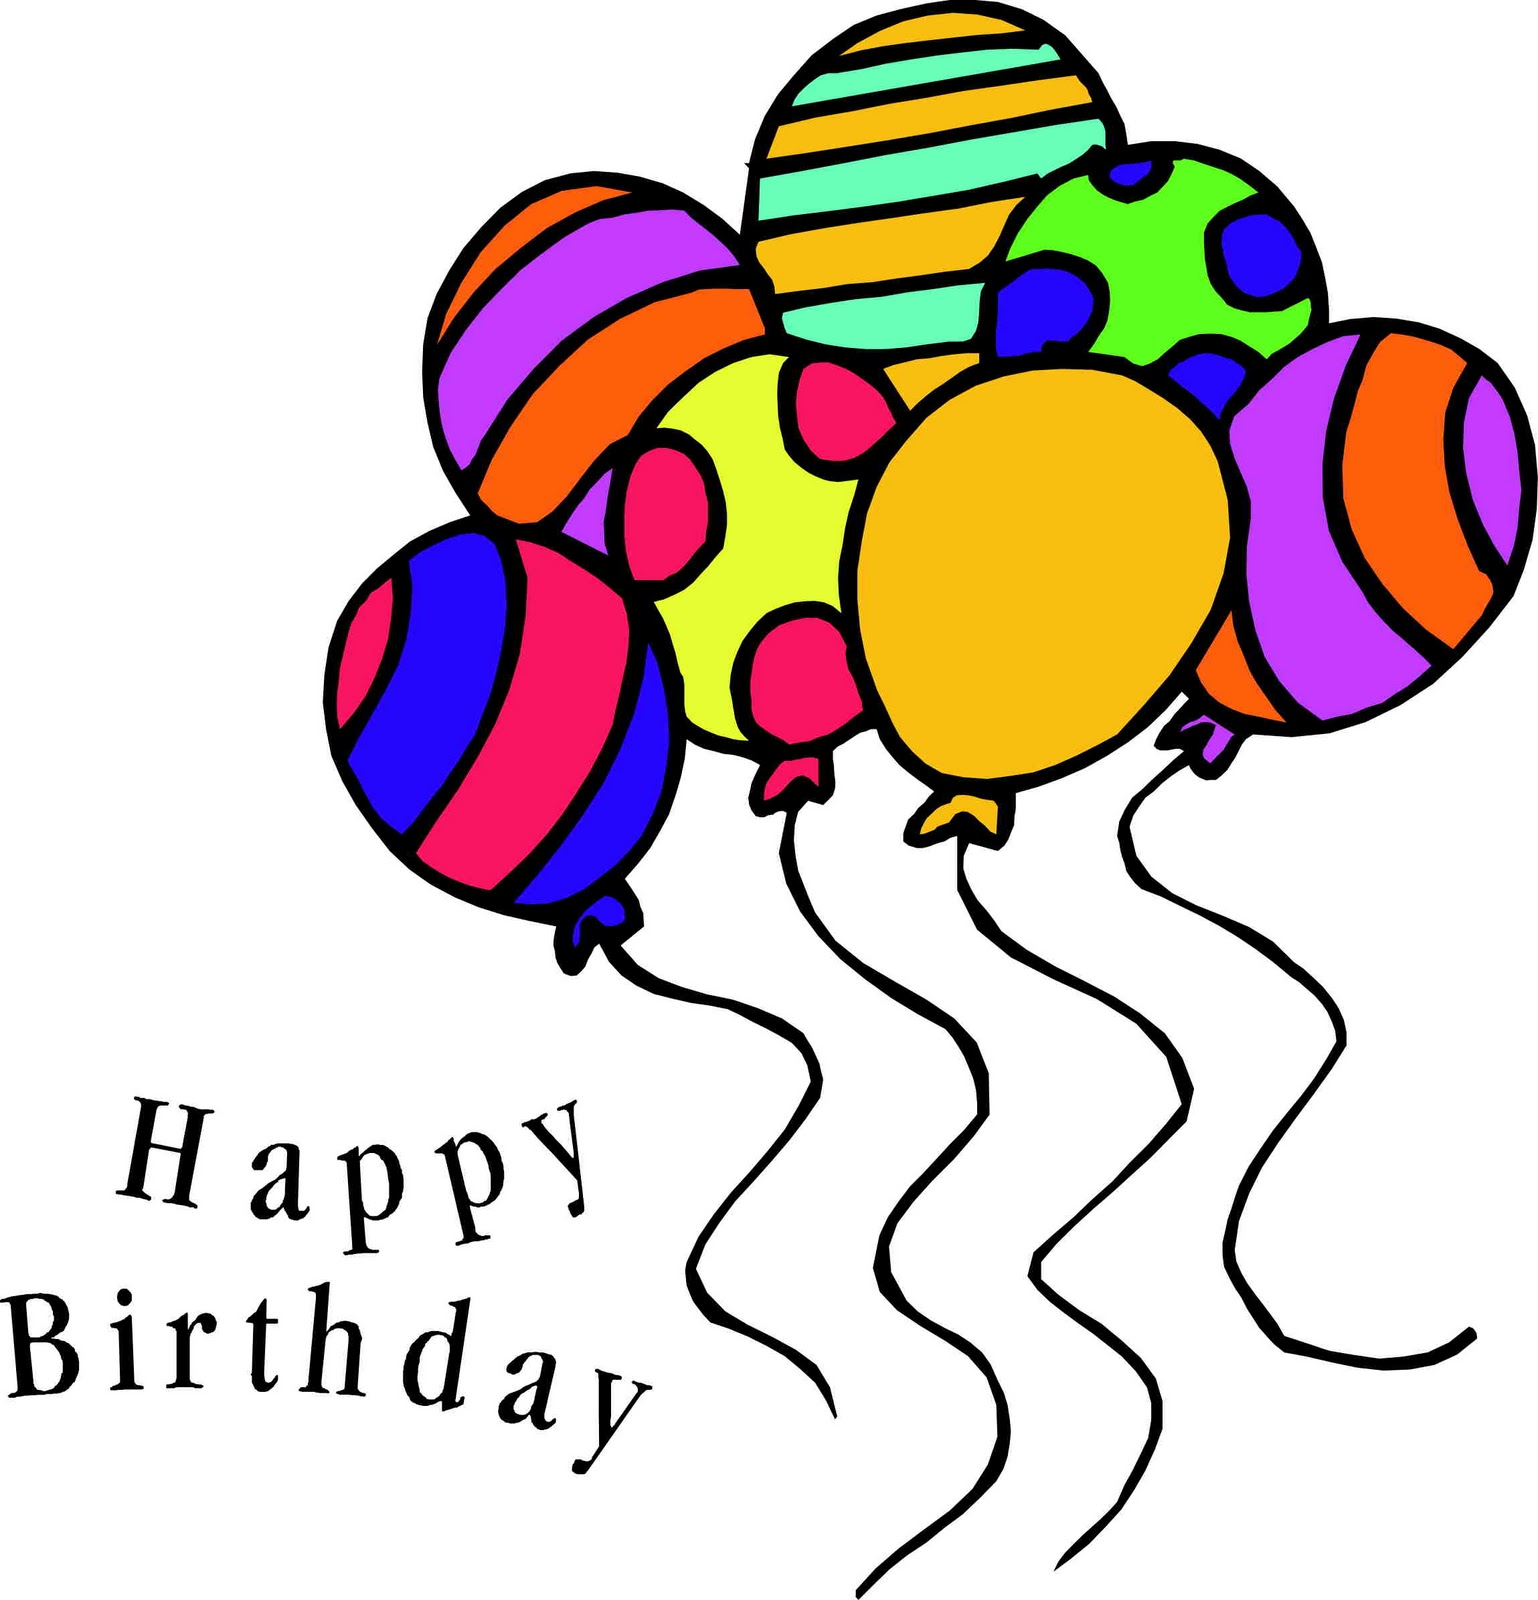 Happy birthday balloons clipart 2